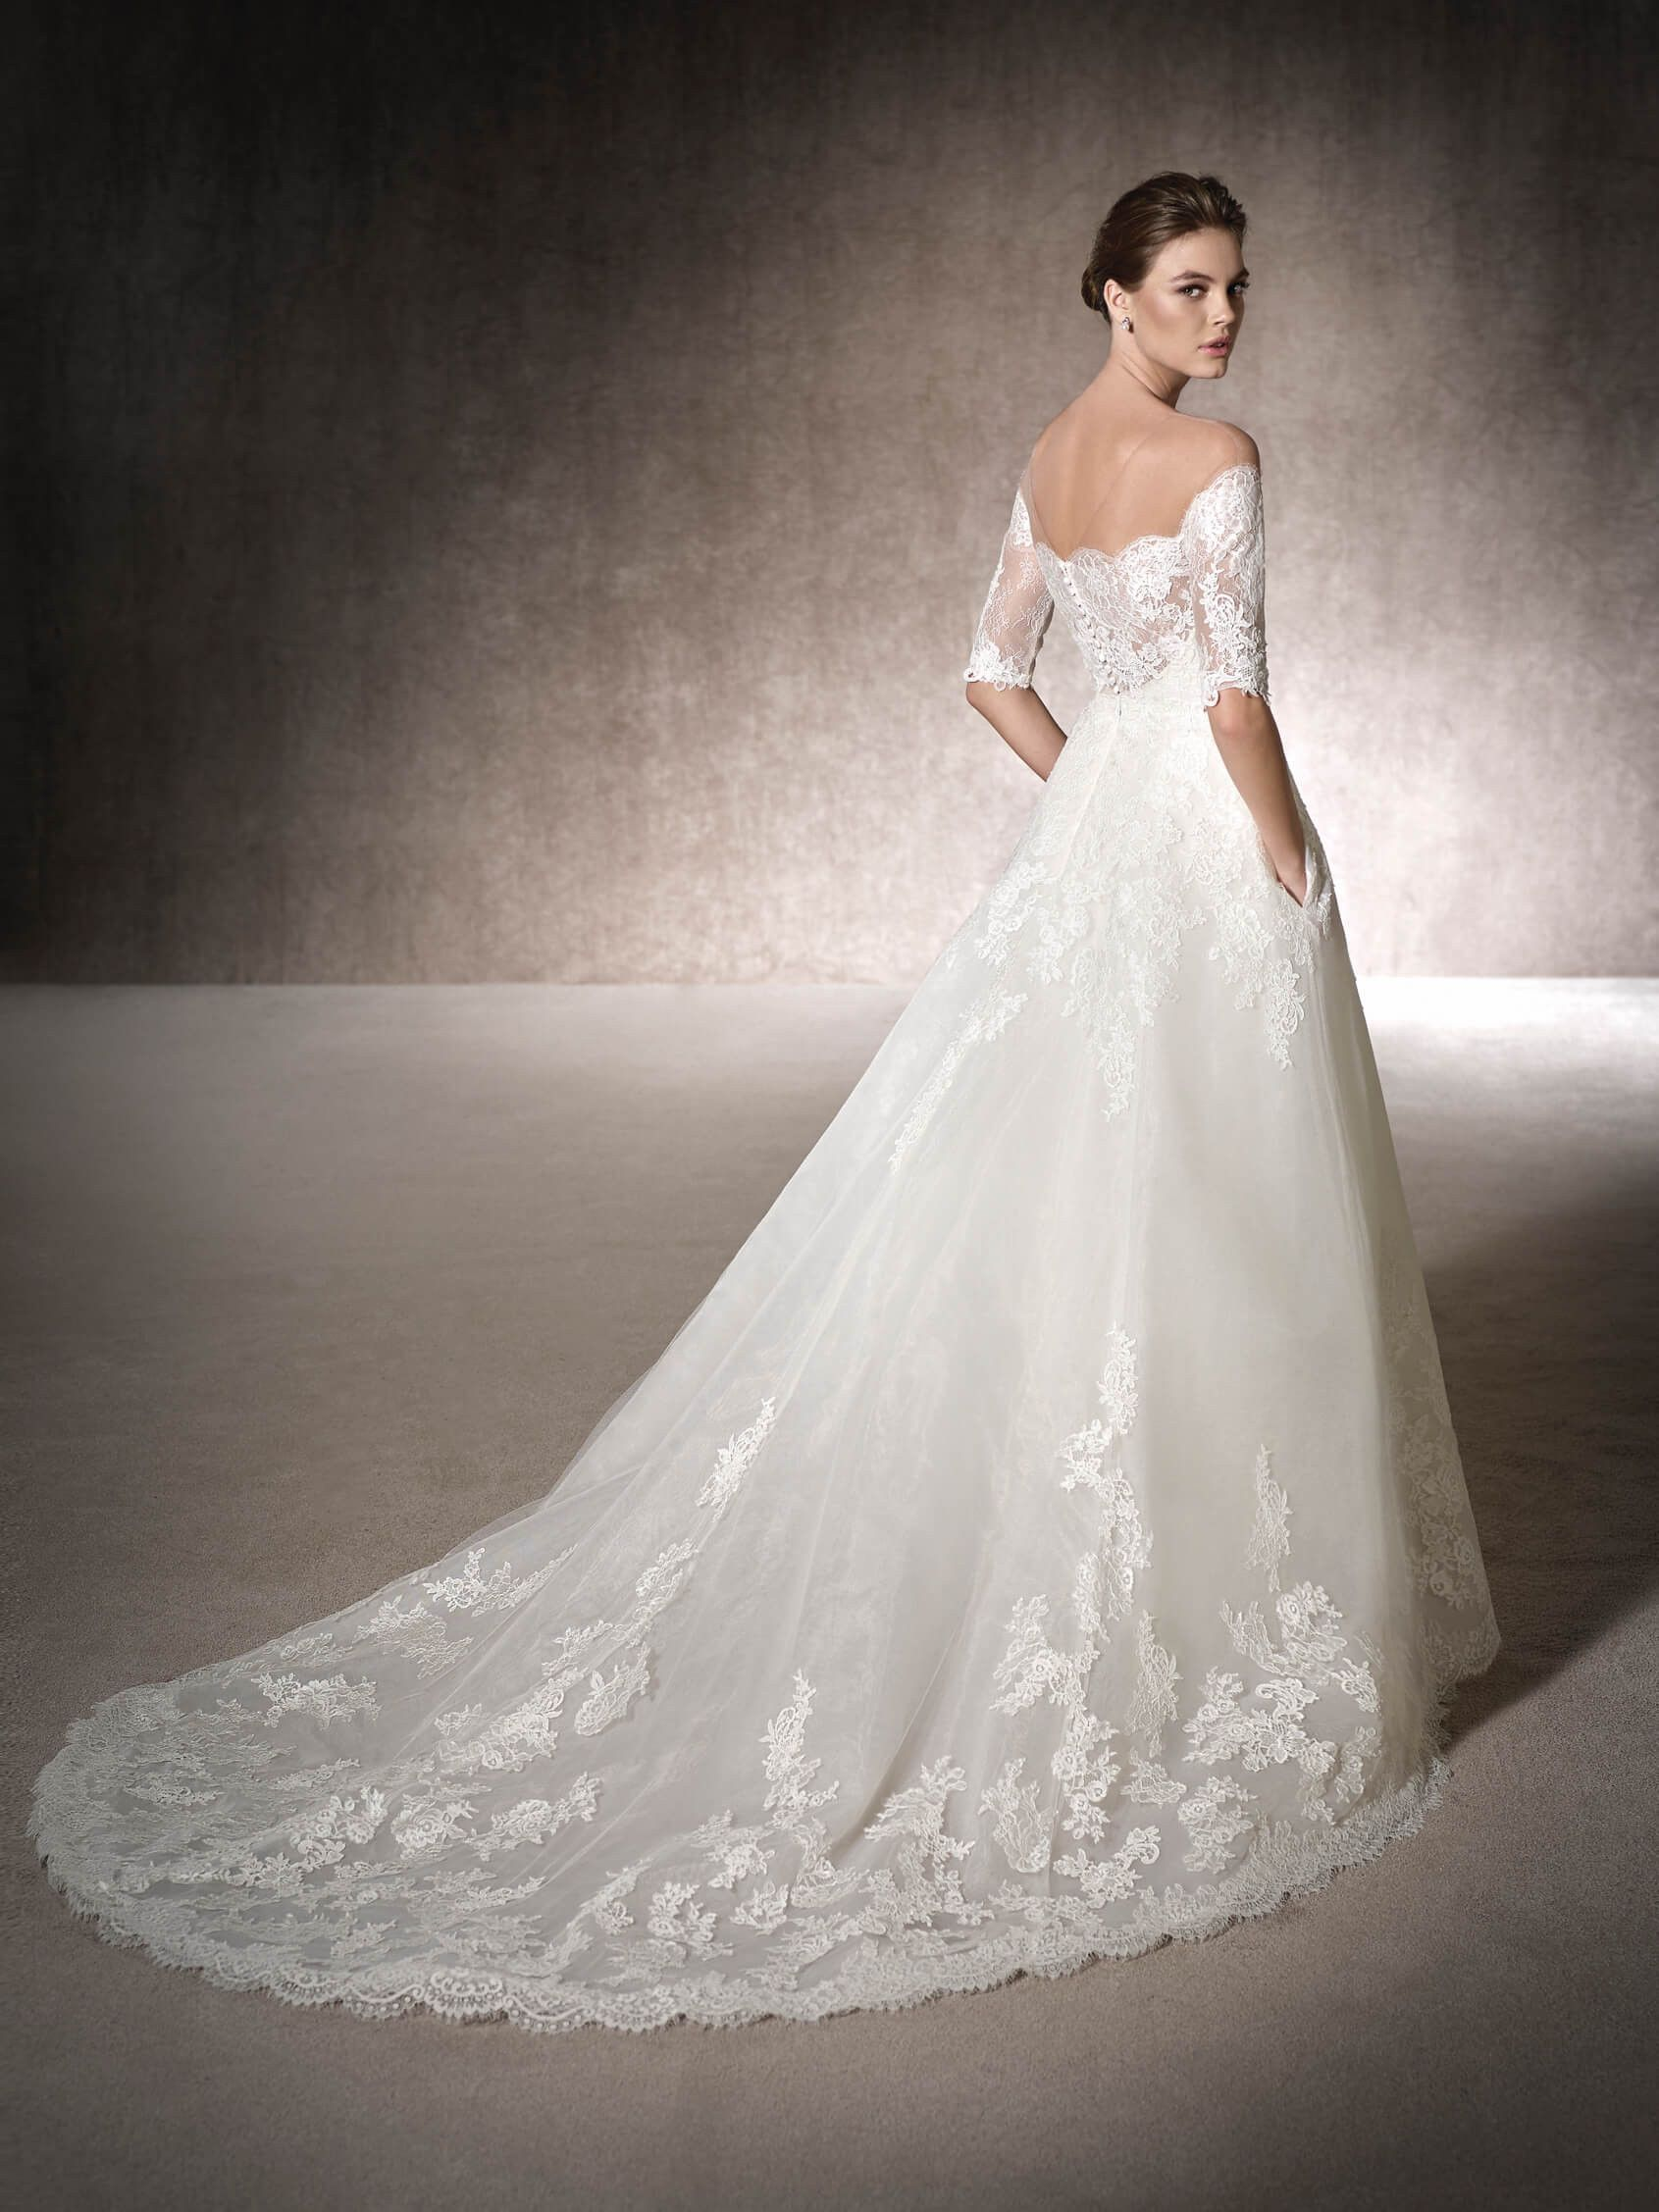 Aline wedding dress merina for julia pinterest wedding dress